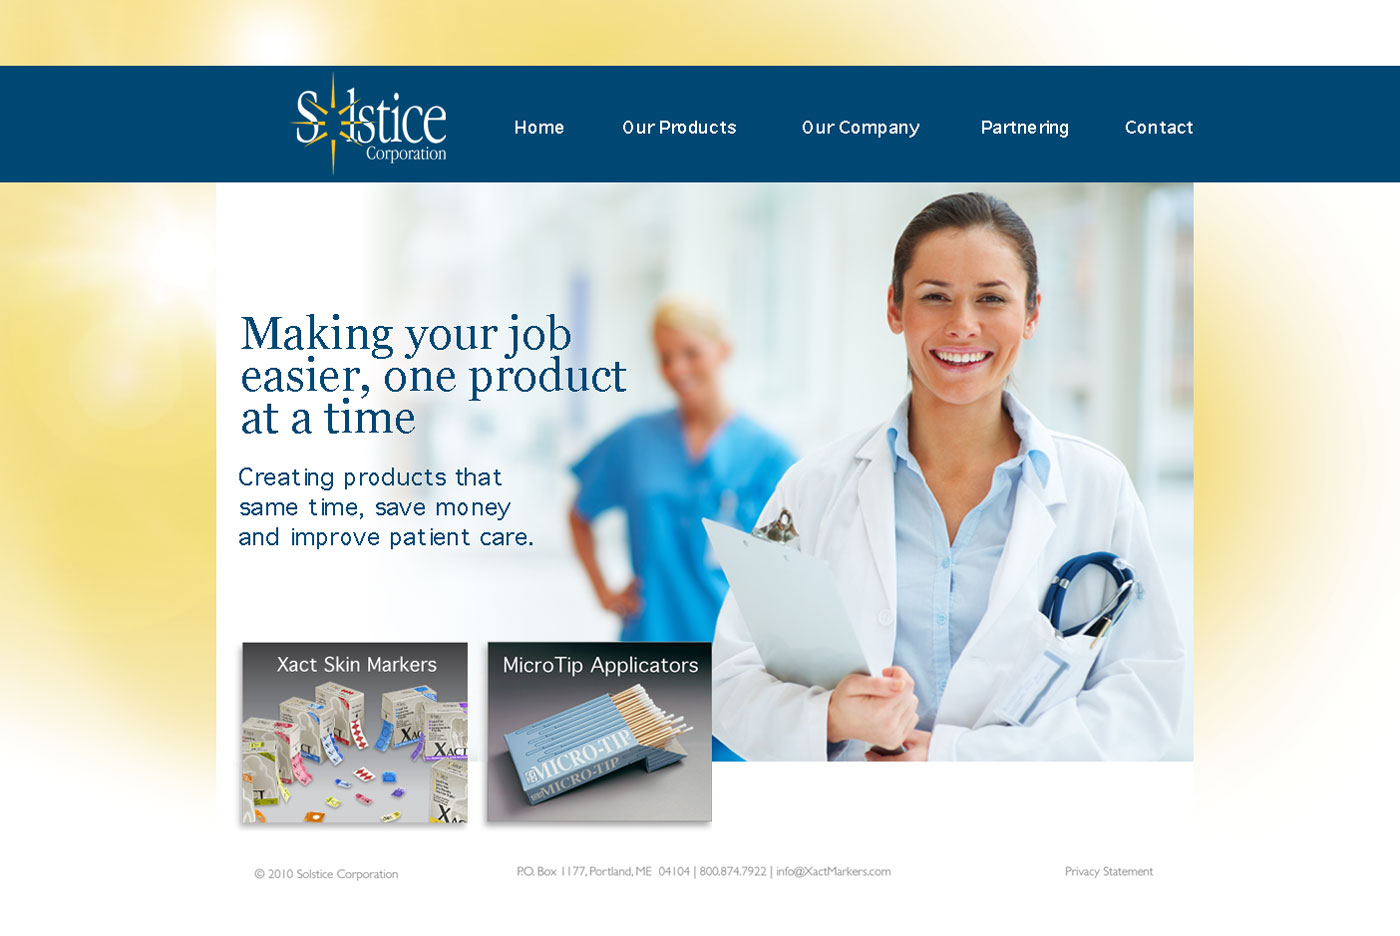 Solstice Website Corporate Home Page